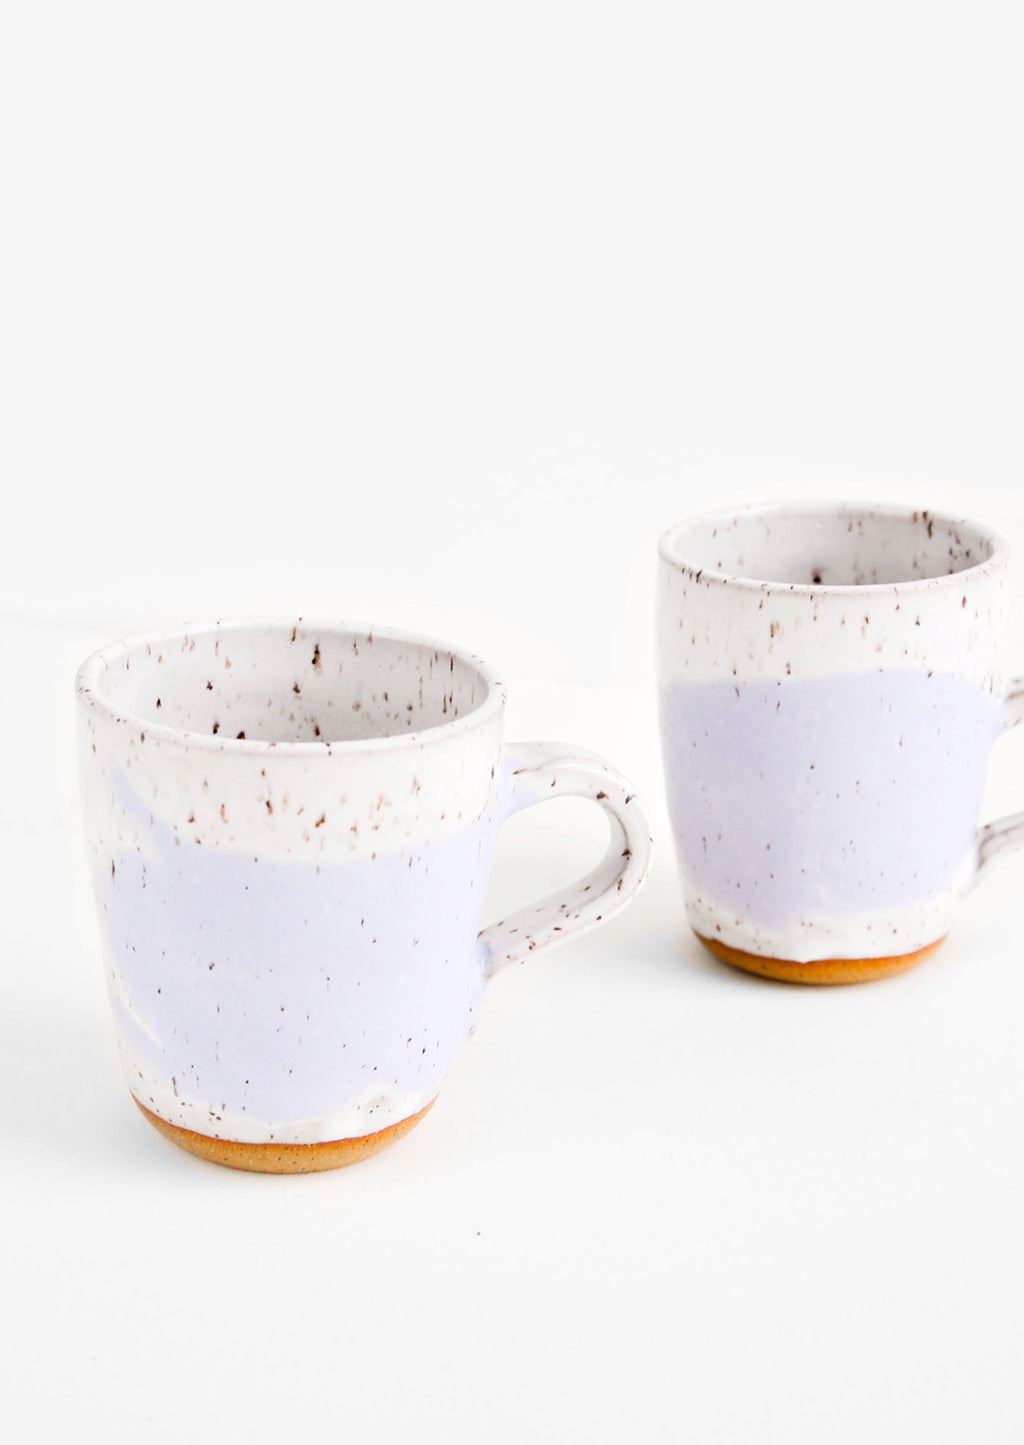 White / Wisteria: Two ceramic mugs in white and purple with brown speckles.